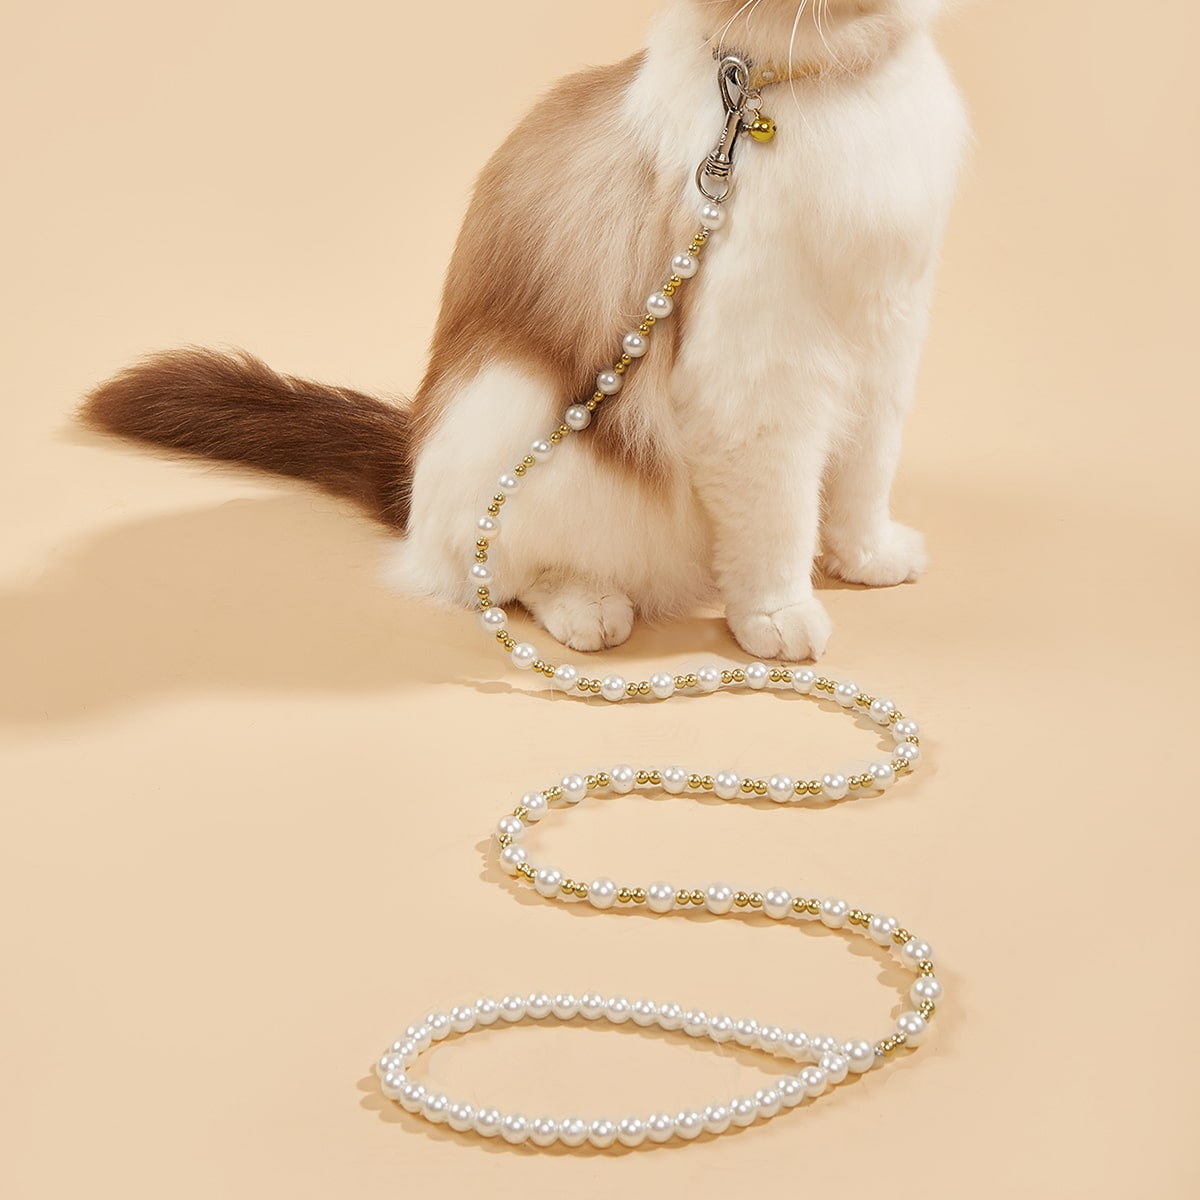 Pearl Beaded Pet Leash, SHEIN  - buy with discount